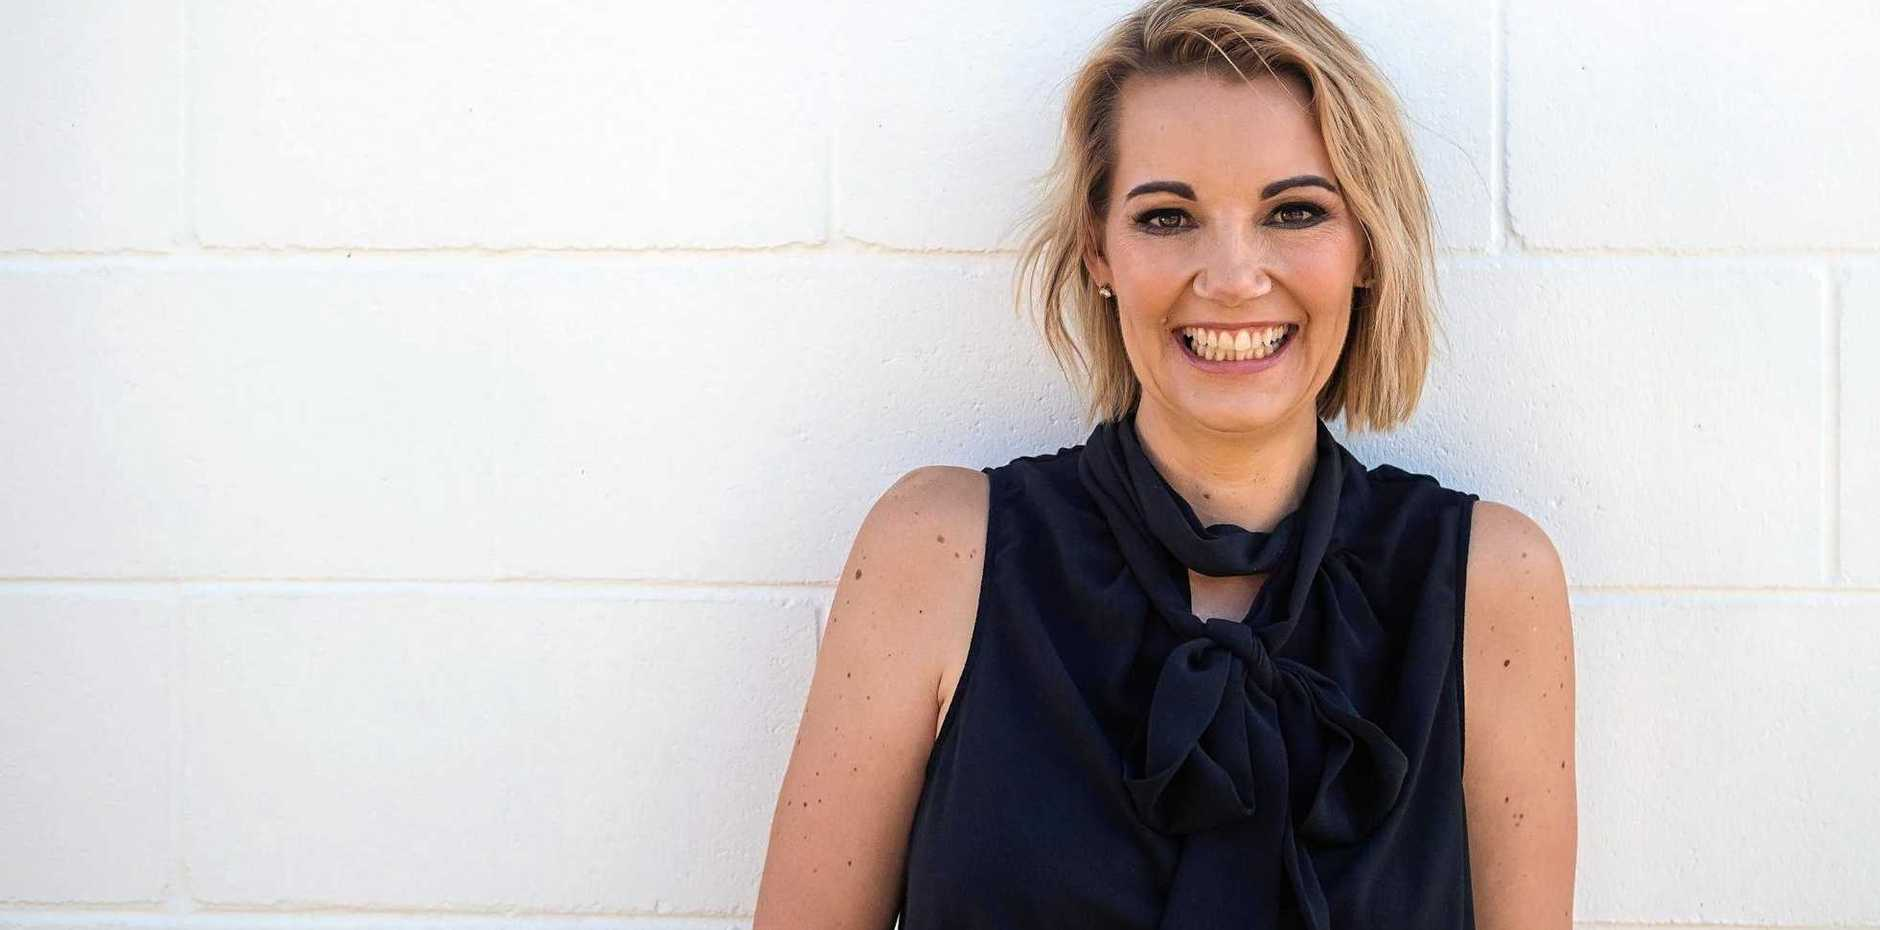 Owner of The Virtual Assistant and mother-of-two Donna Marks has been nominated for an Australian Mumpreneur award.